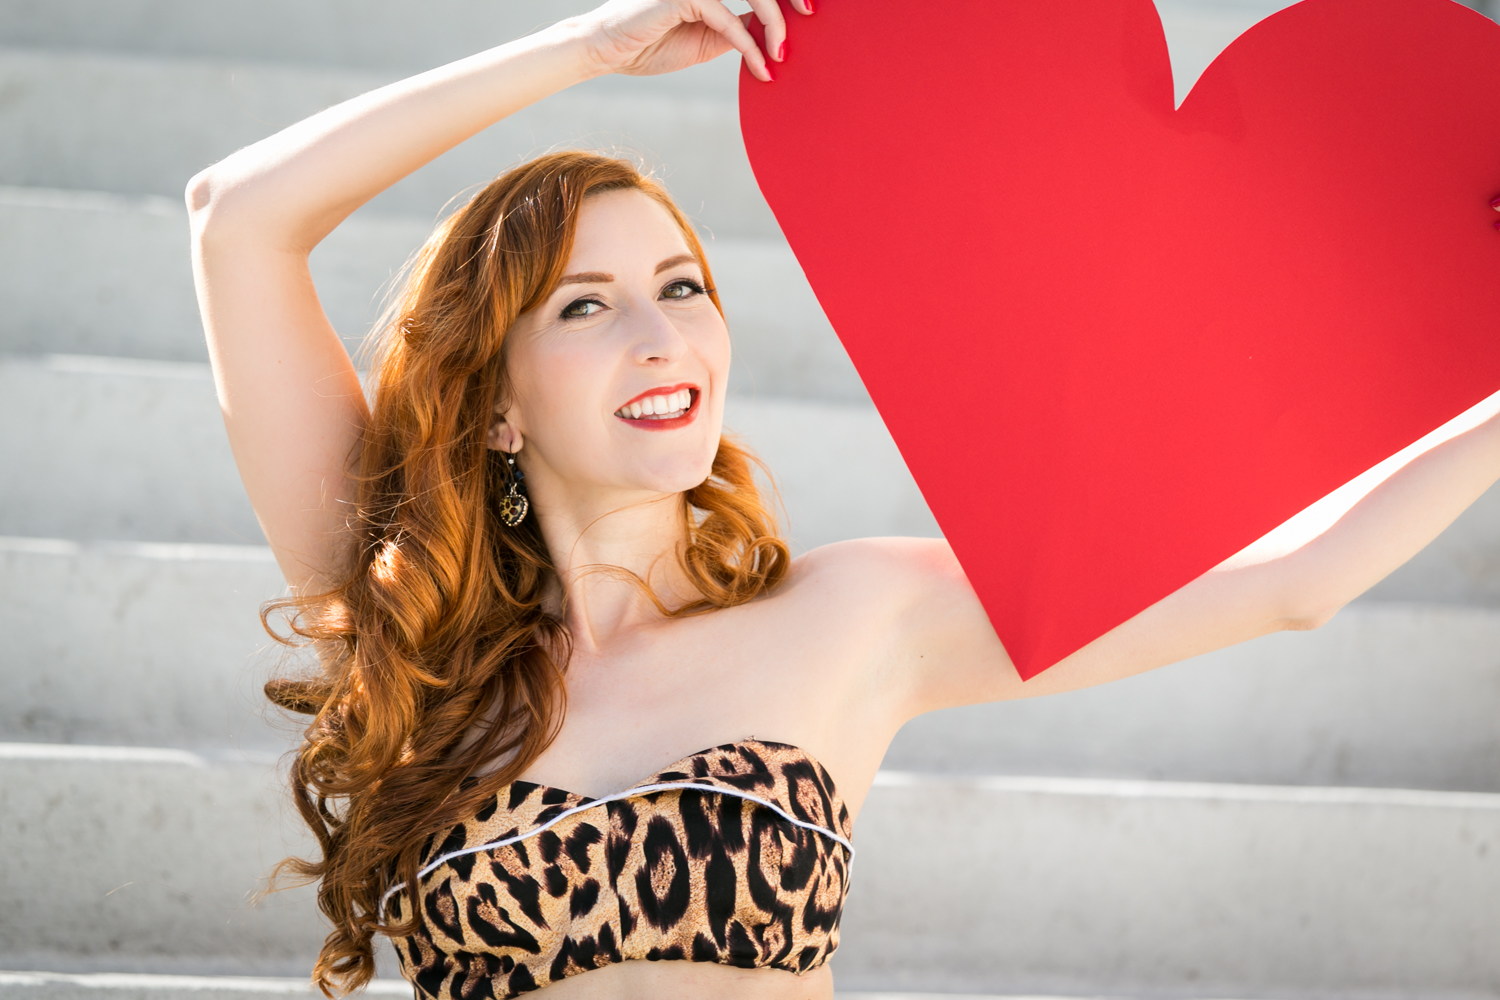 Pinup model holding a large, red heart for article about free pinup photo session offer